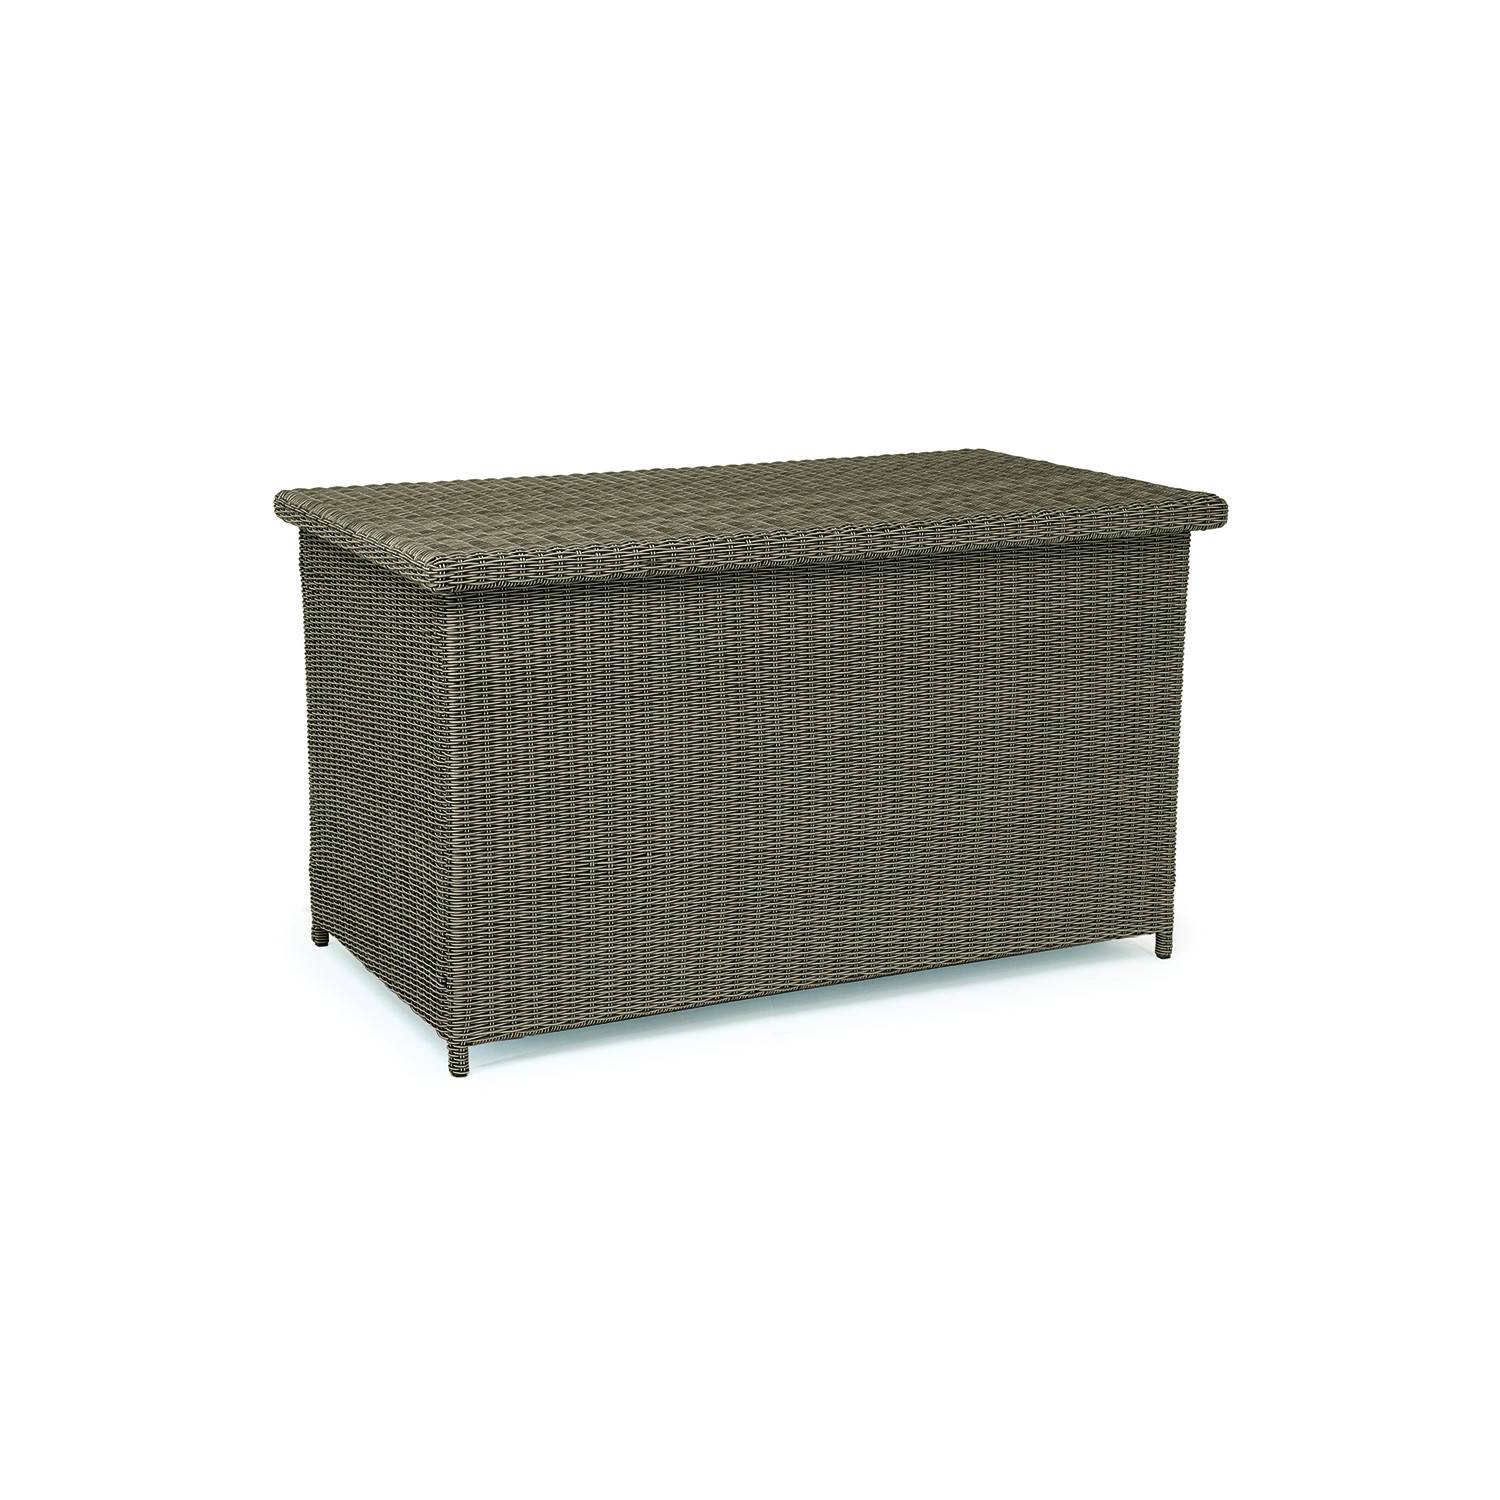 Kettler Palma Cushion Box, Rattan